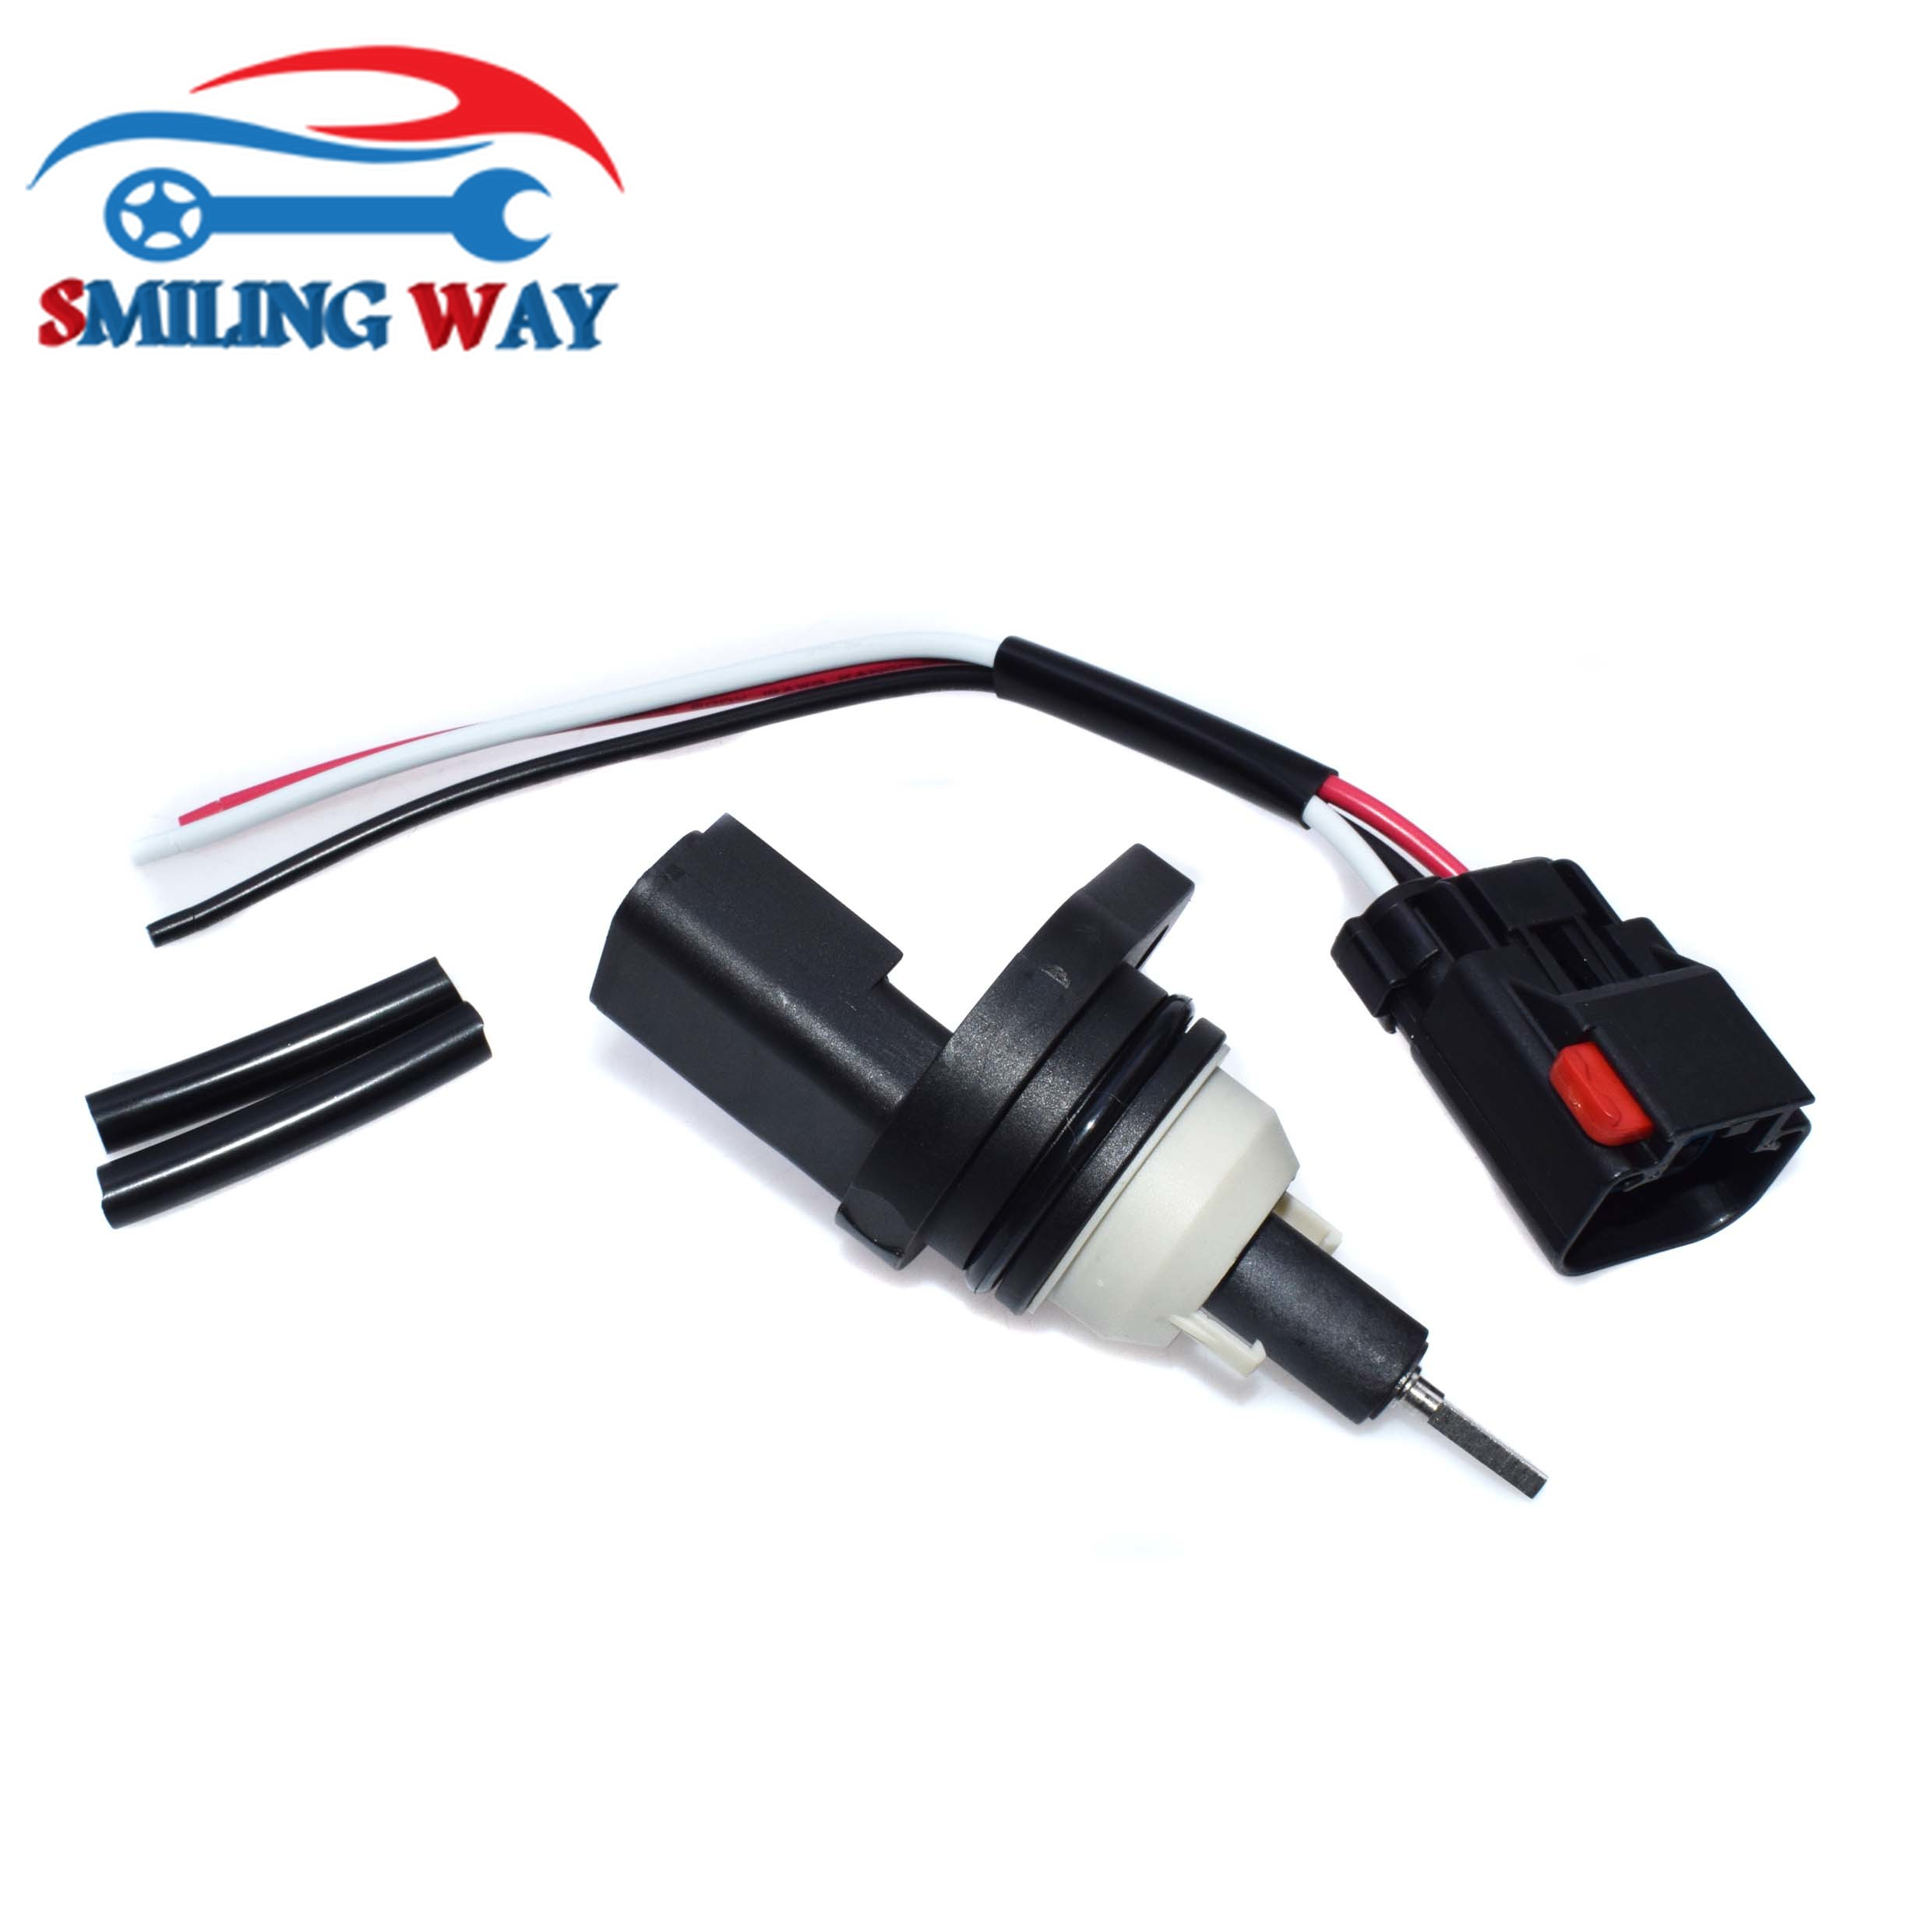 Cut Price Vehicle Speed Sensor & Connector Wire Plug Cable For Chrysler Dodge Jeep Plymouth OE# SC105 4707386 4707389 4882463 56028183 32969321534